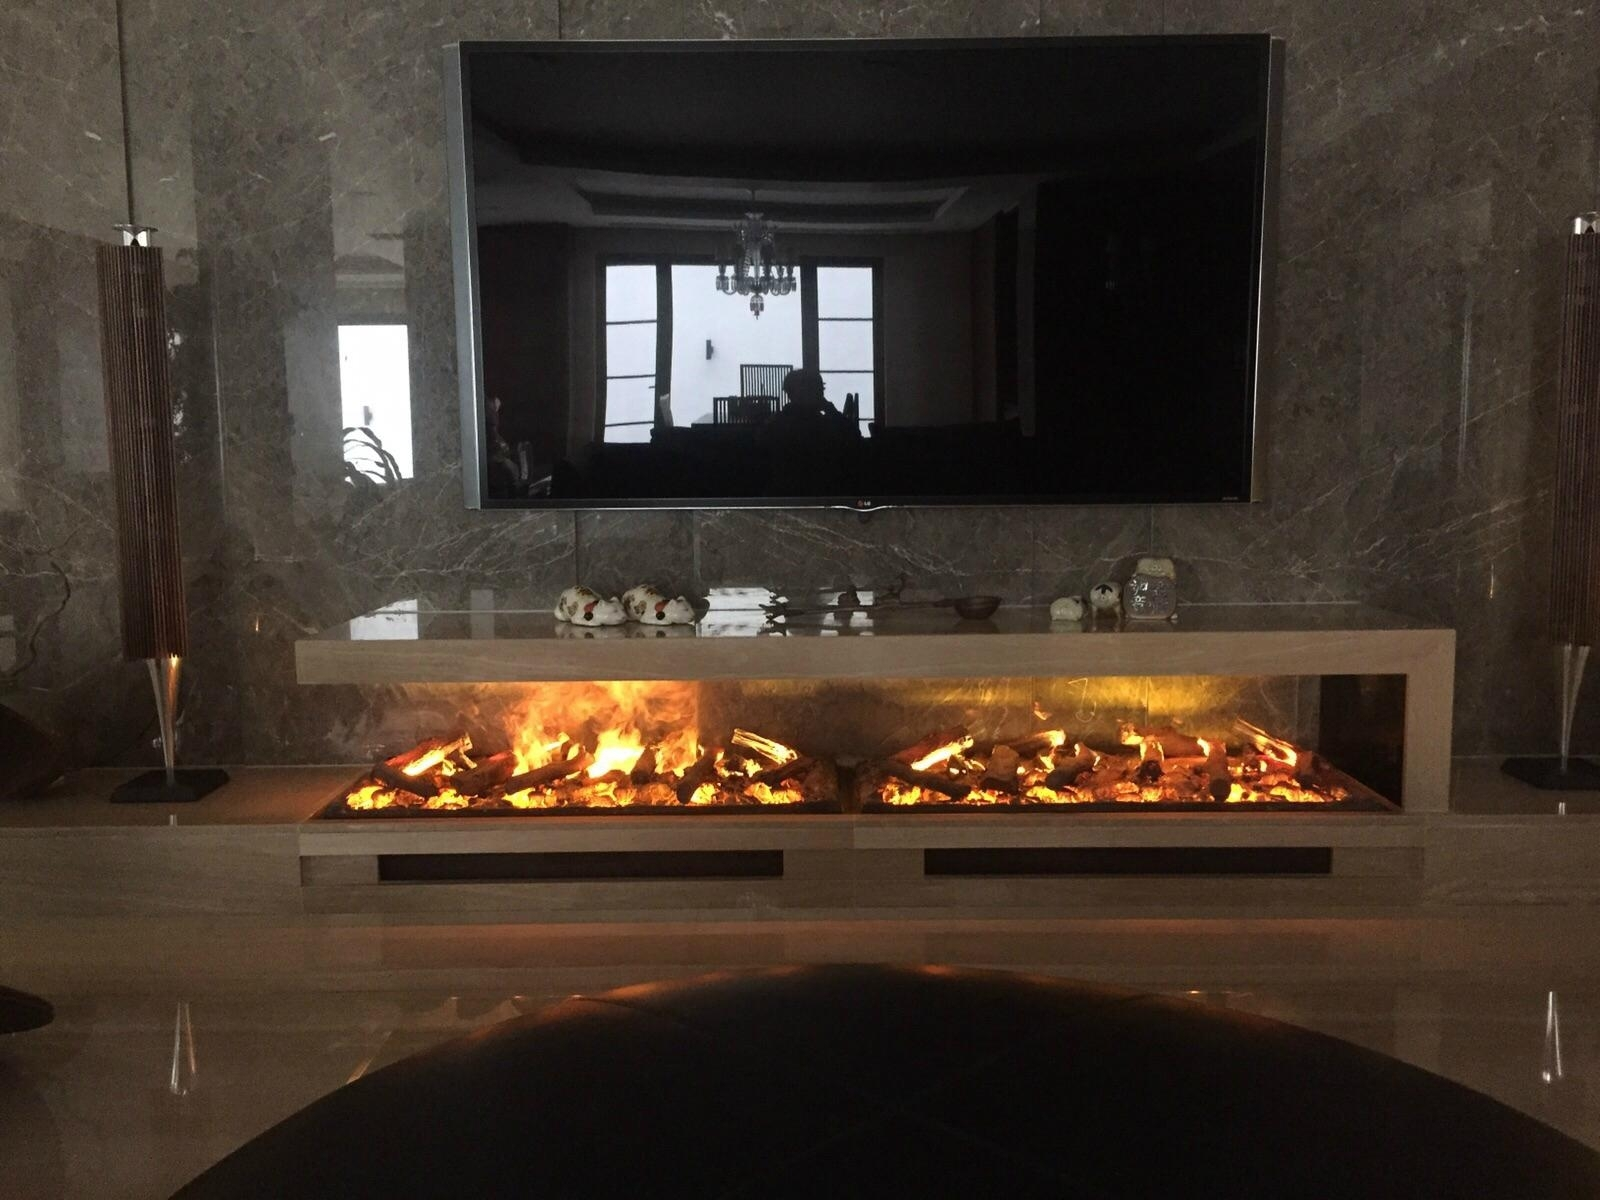 3D electric fireplace and his job - BB Fires, a leading supplier of